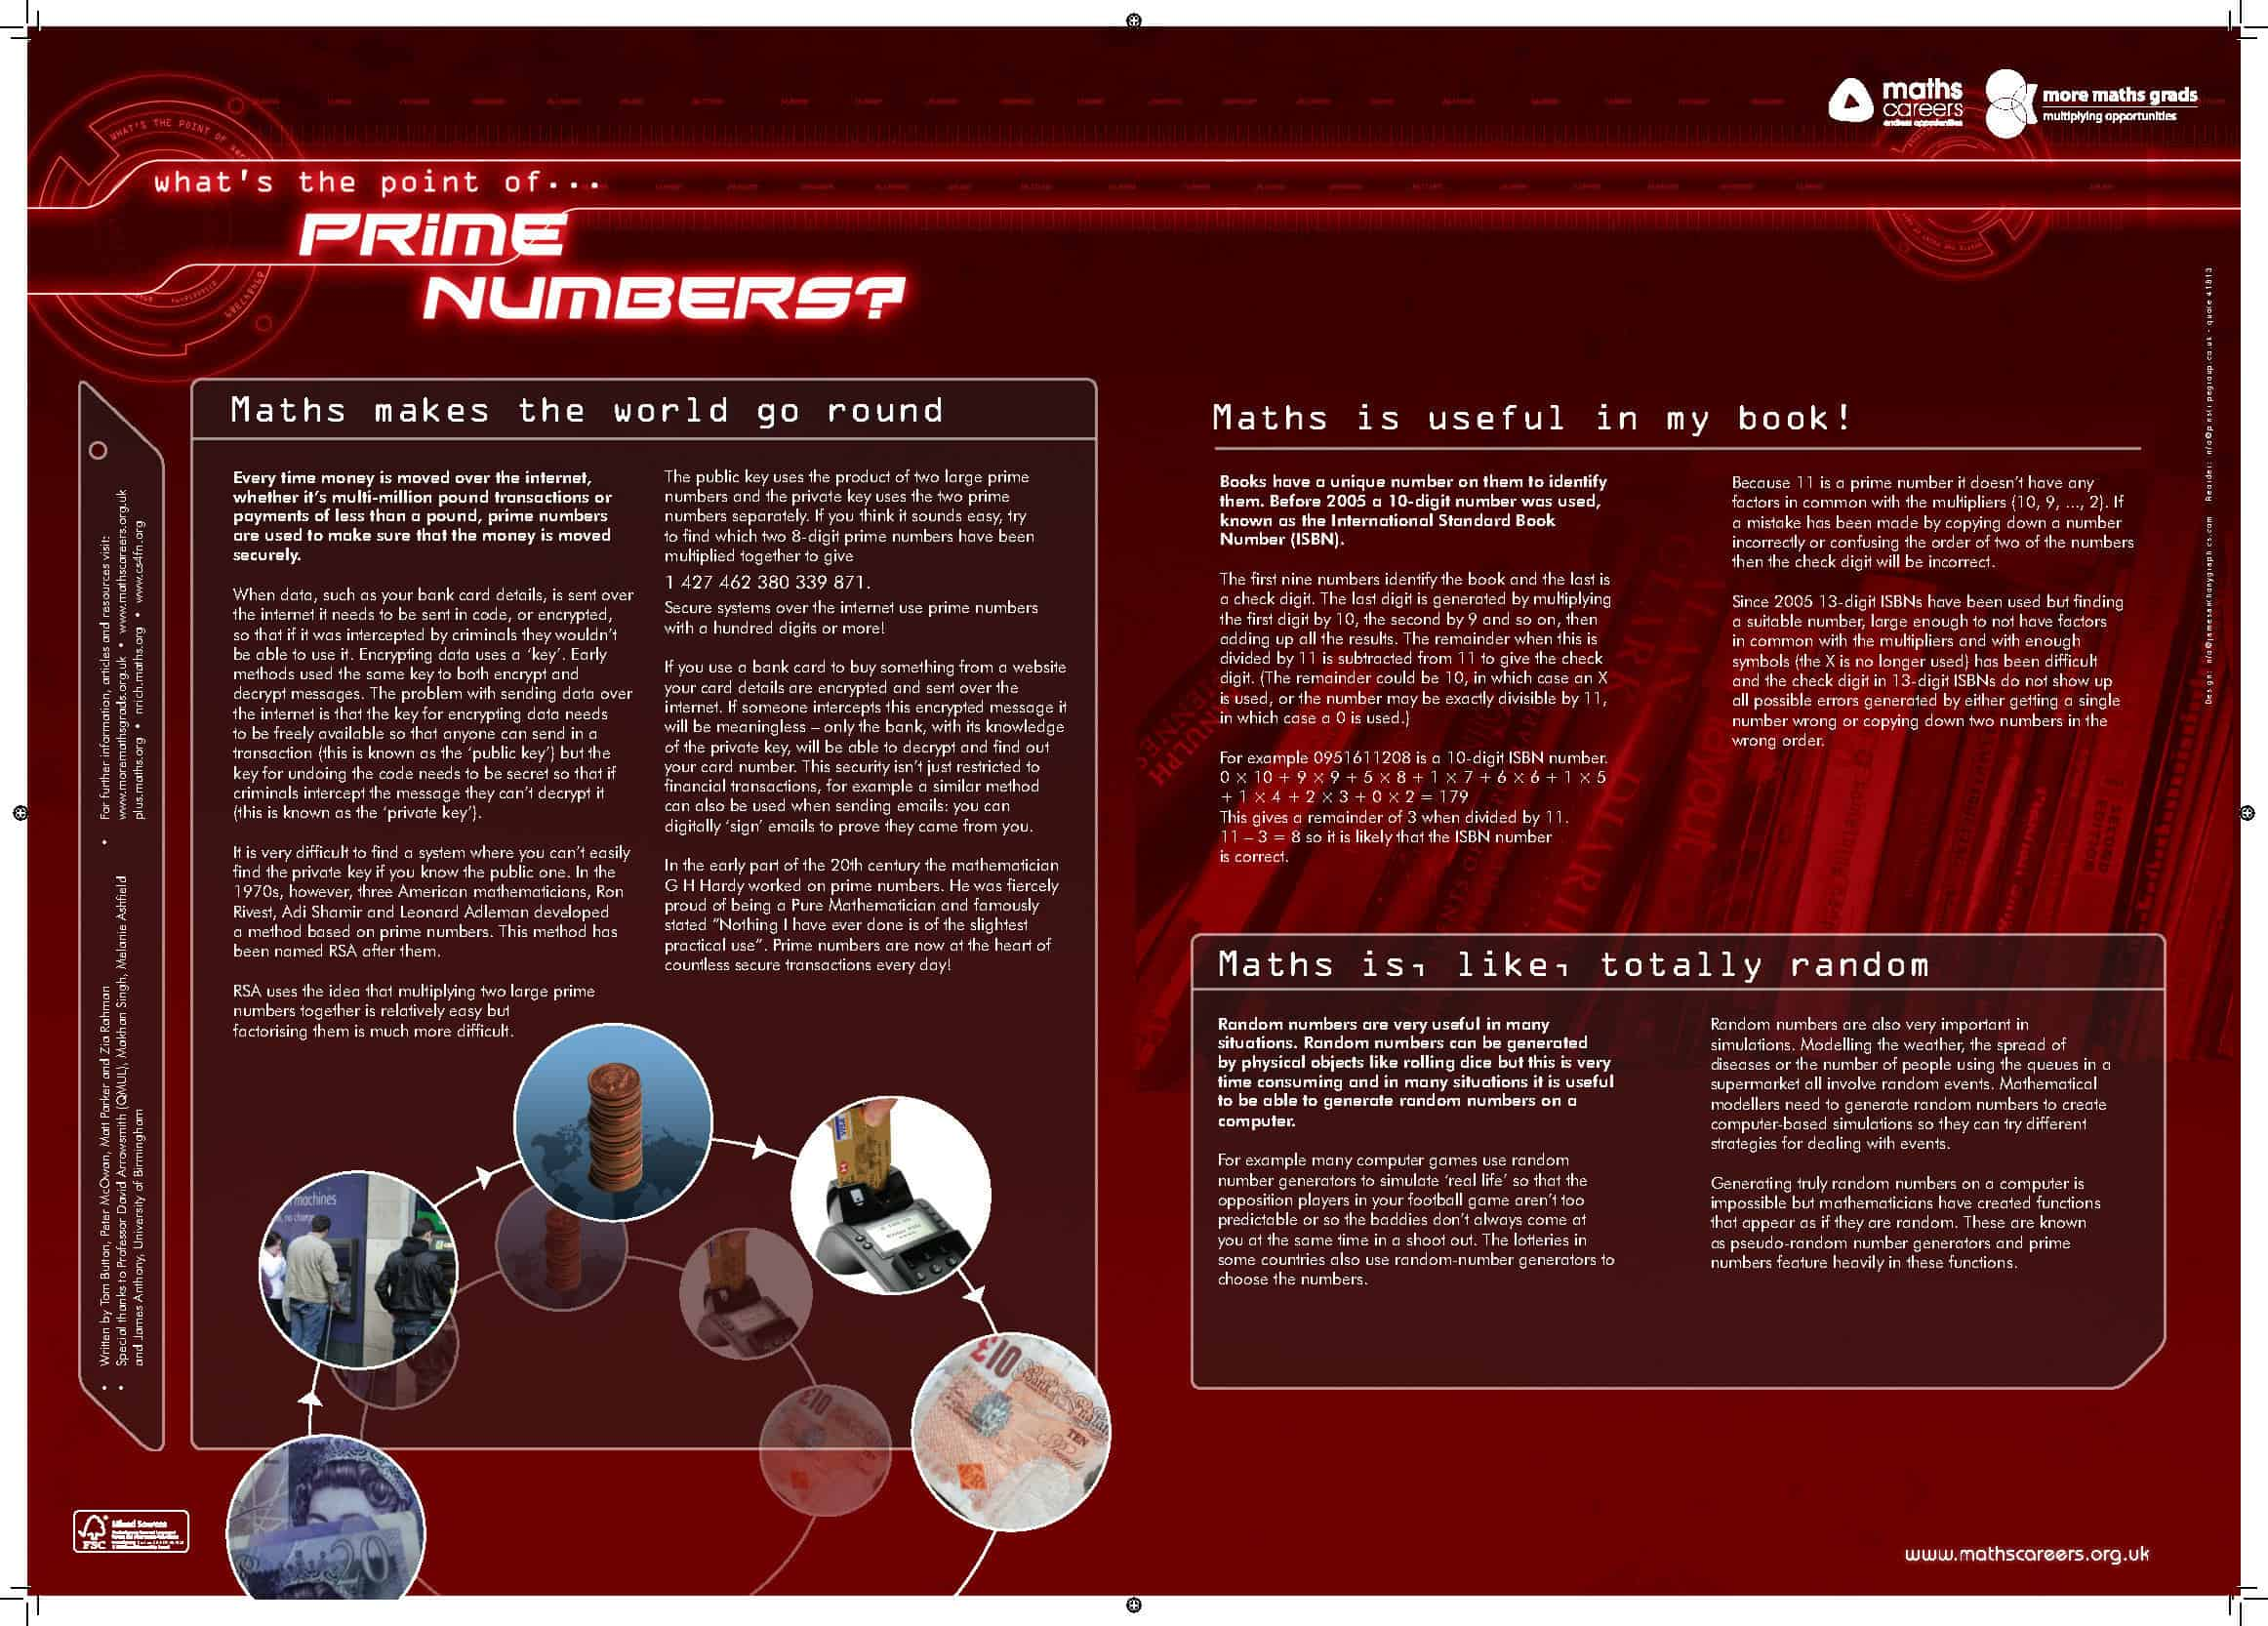 Posters and Resources from Maths in a Box - Maths Careers